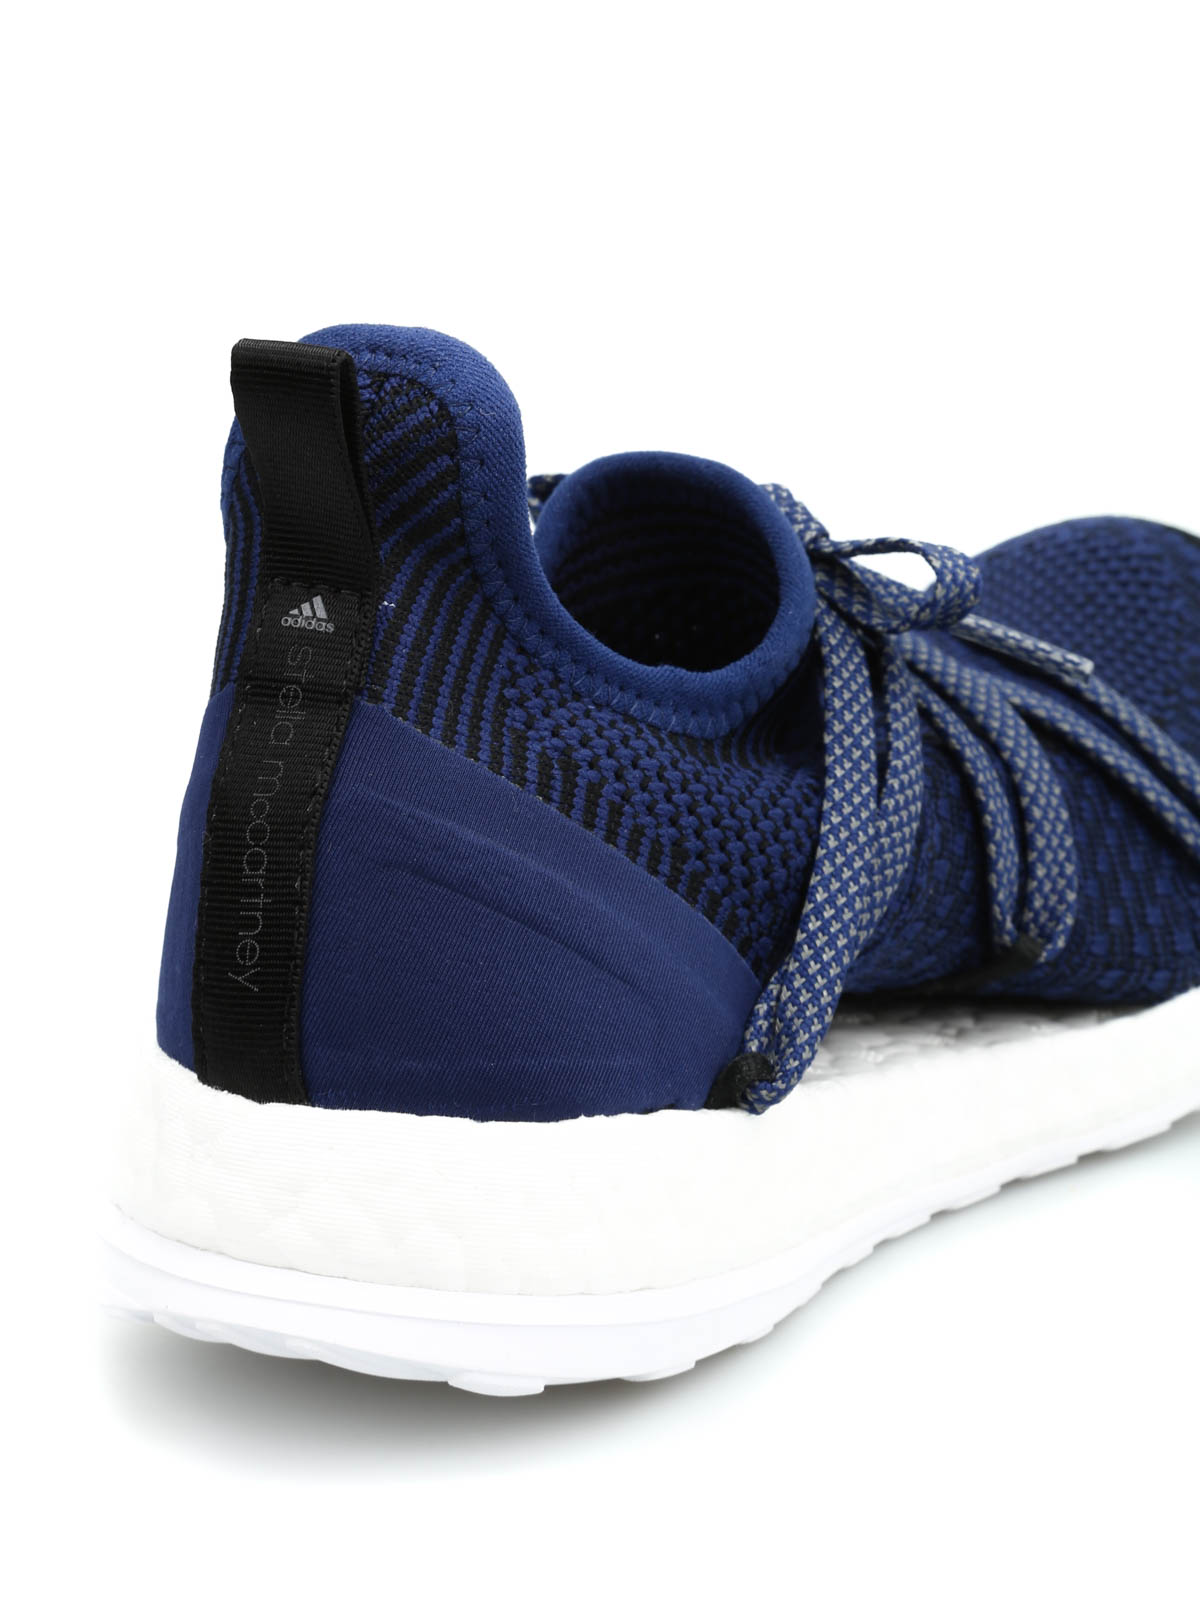 adidas by stella mccartney pure boost x sneakers. Black Bedroom Furniture Sets. Home Design Ideas